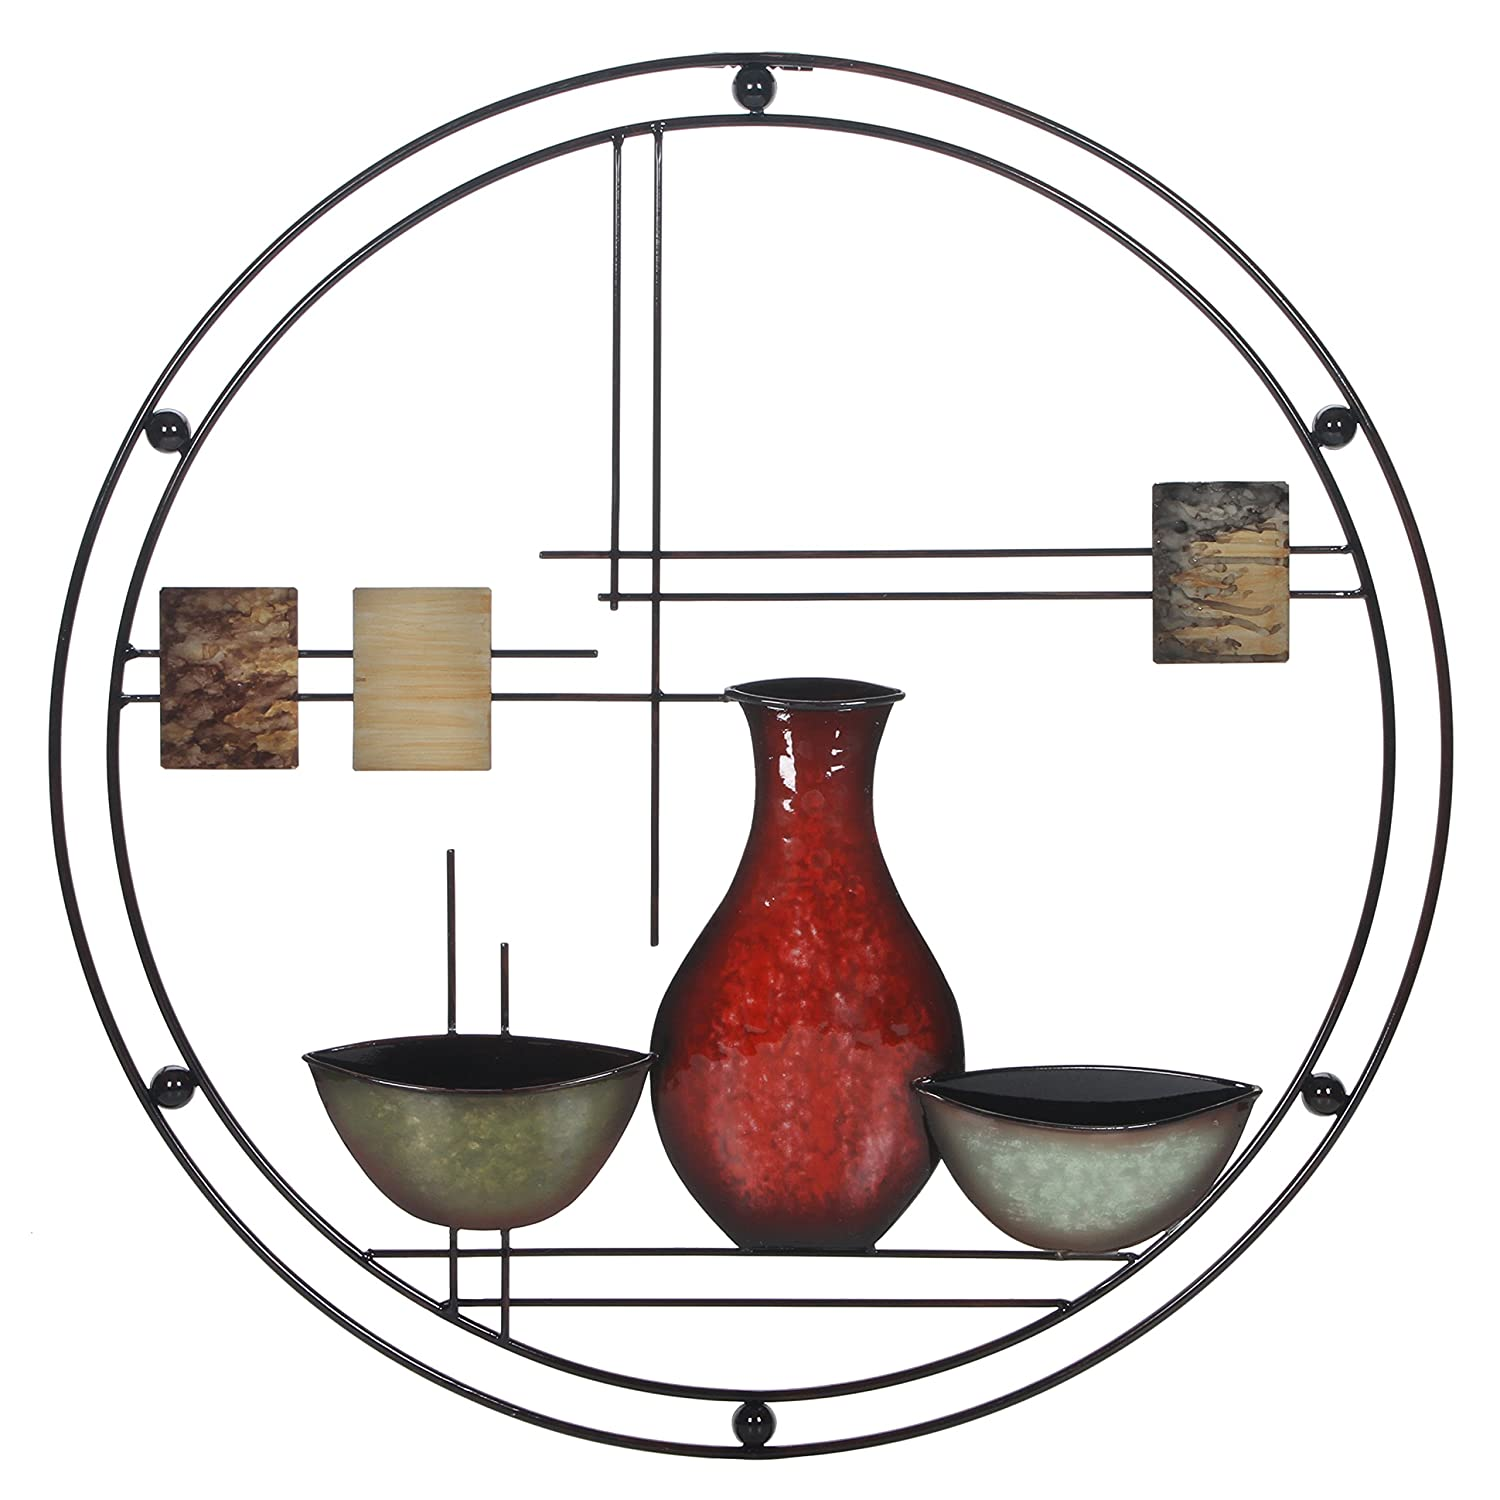 Hosley's 24 Diameter Abstract Vases Metal Circle Art. Ideal Gift for Home, Weddings, Party, Spa, Votive Candle Gardens, Home Office P9 HG Global FBA-BS52431WL-1-EA